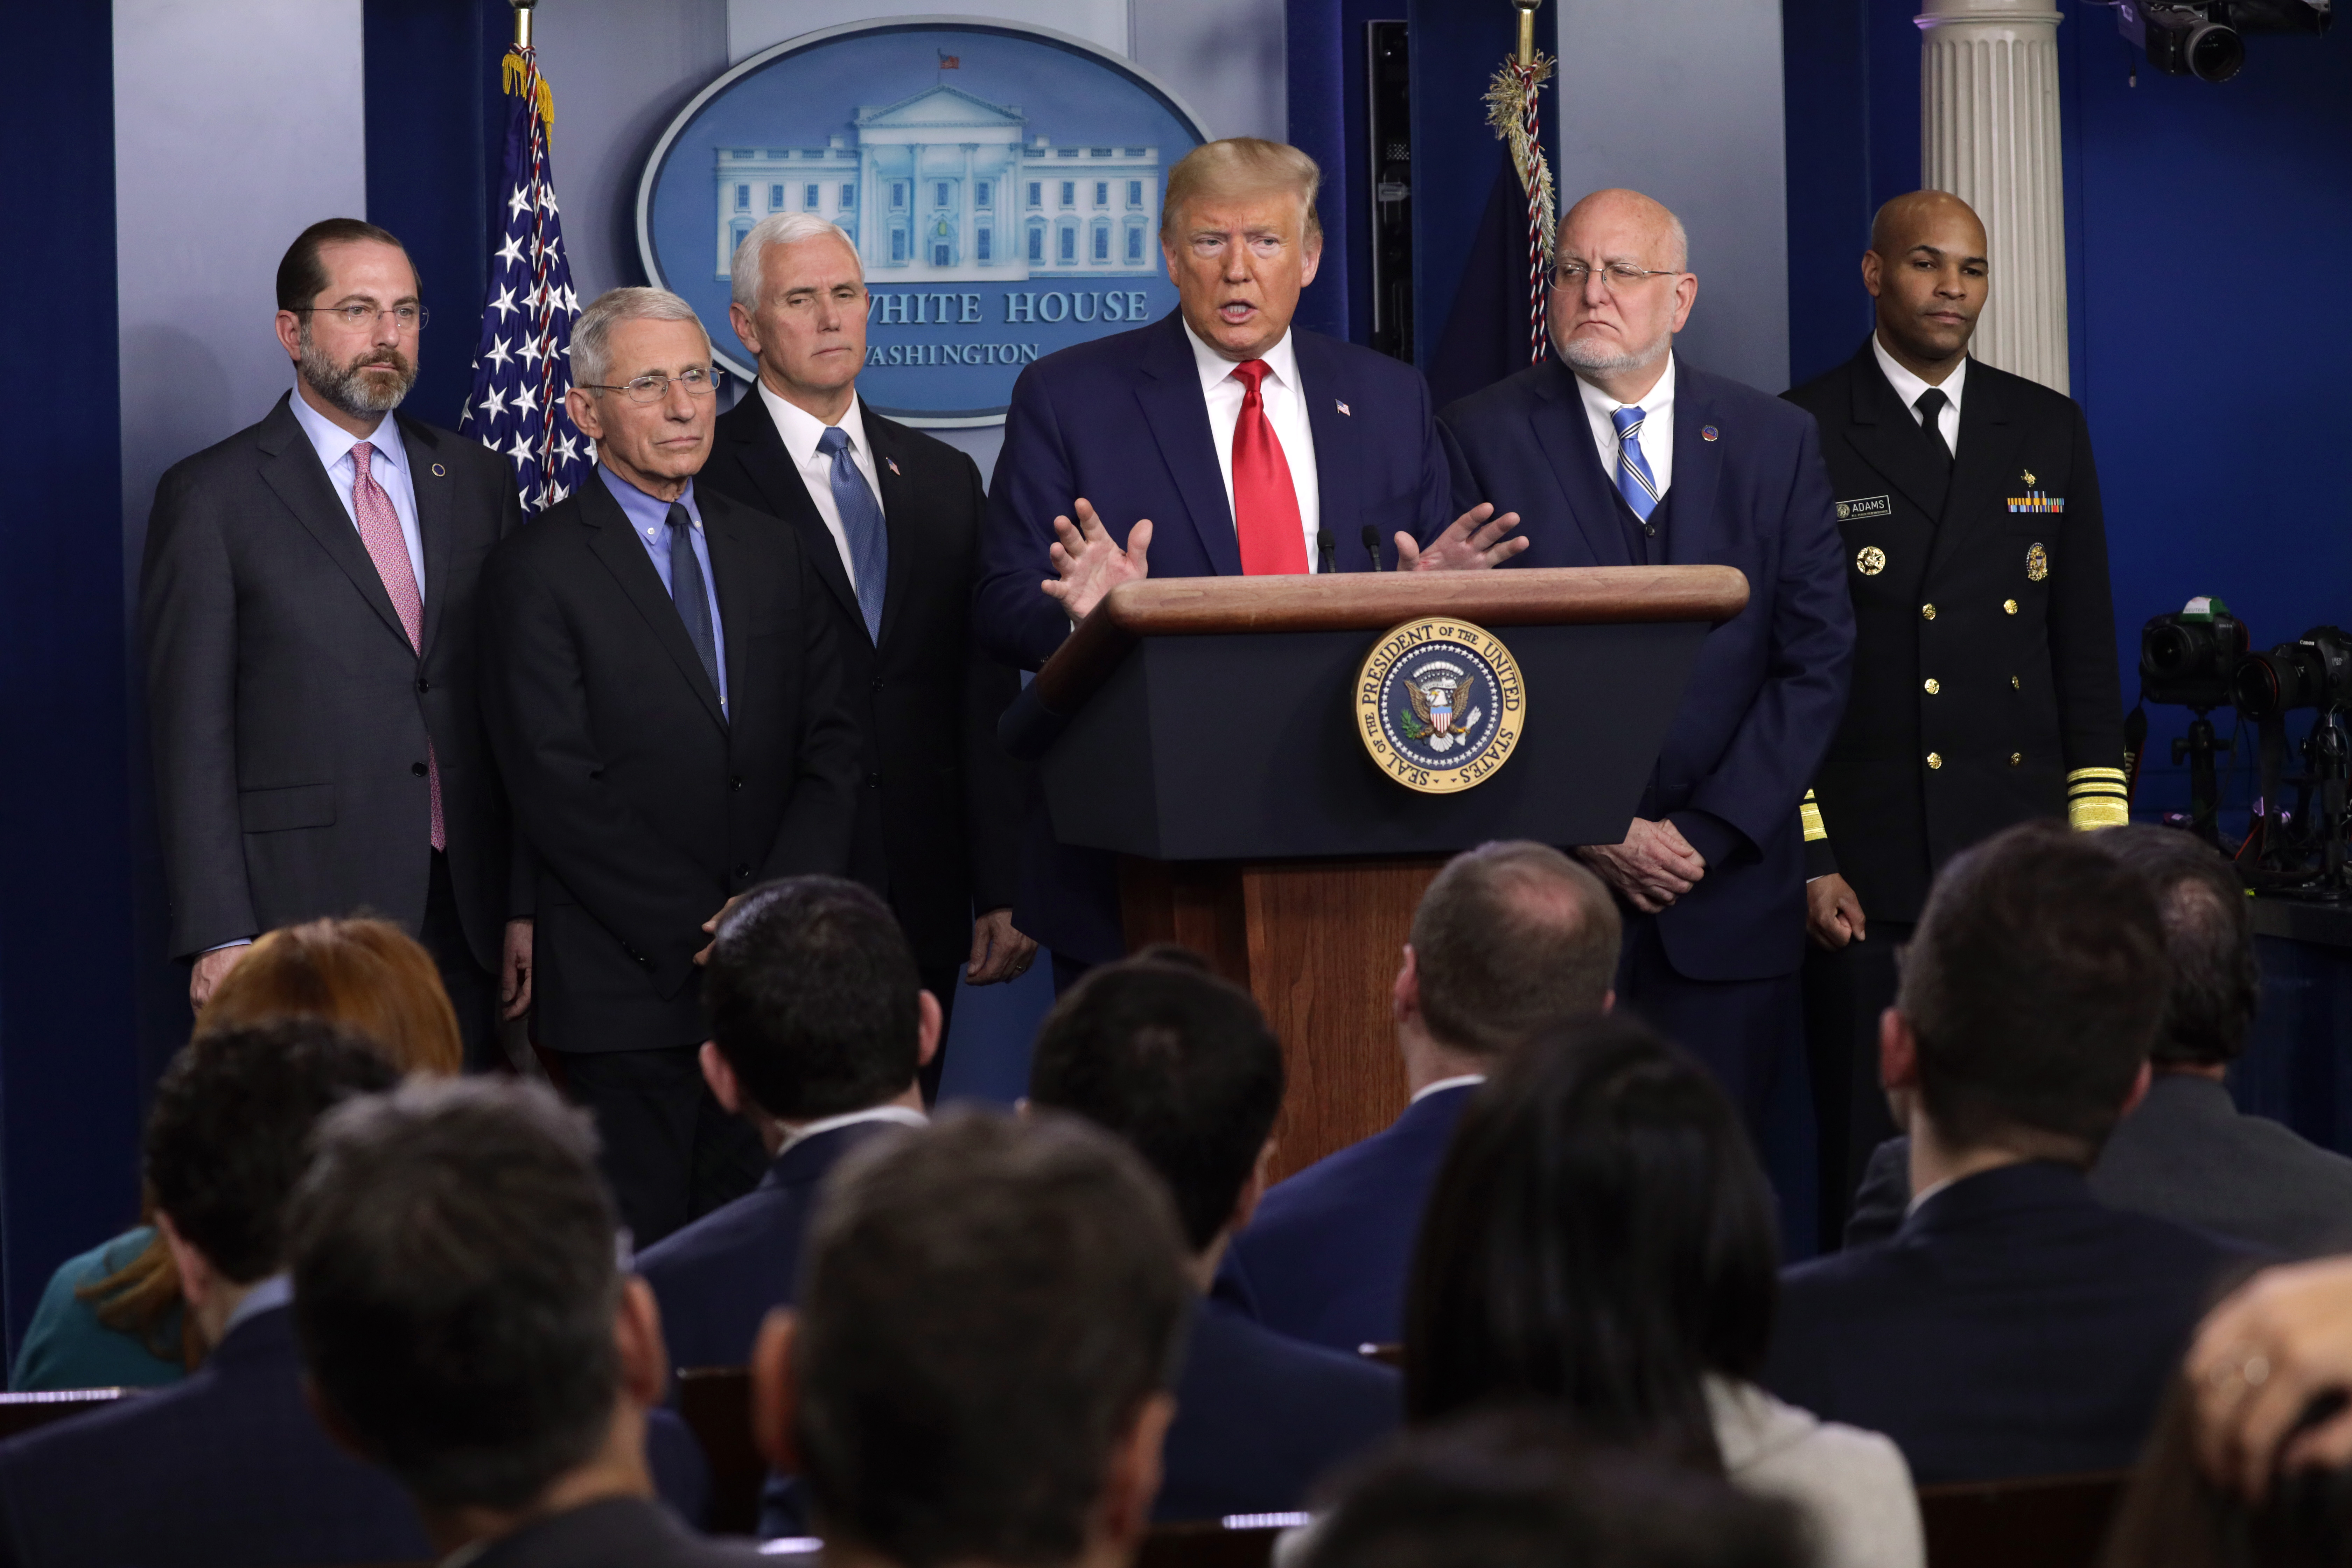 WASHINGTON, DC - FEBRUARY 29: U.S. President Donald Trump speaks as Health and Human Services Secretary Alex Azar, National Institute for Allergy and Infectious Diseases Director Anthony Fauci, Vice President Mike Pence, Centers for Disease Control and Prevention Director Robert Redfield and Surgeon General Jerome Adams look on during a news conference at the James Brady Press Briefing Room at the White House February 29, 2020 in Washington, DC. Department of Health in Washington State has reported the first death in the U.S. related to the coronavirus. (Photo by Alex Wong/Getty Images)